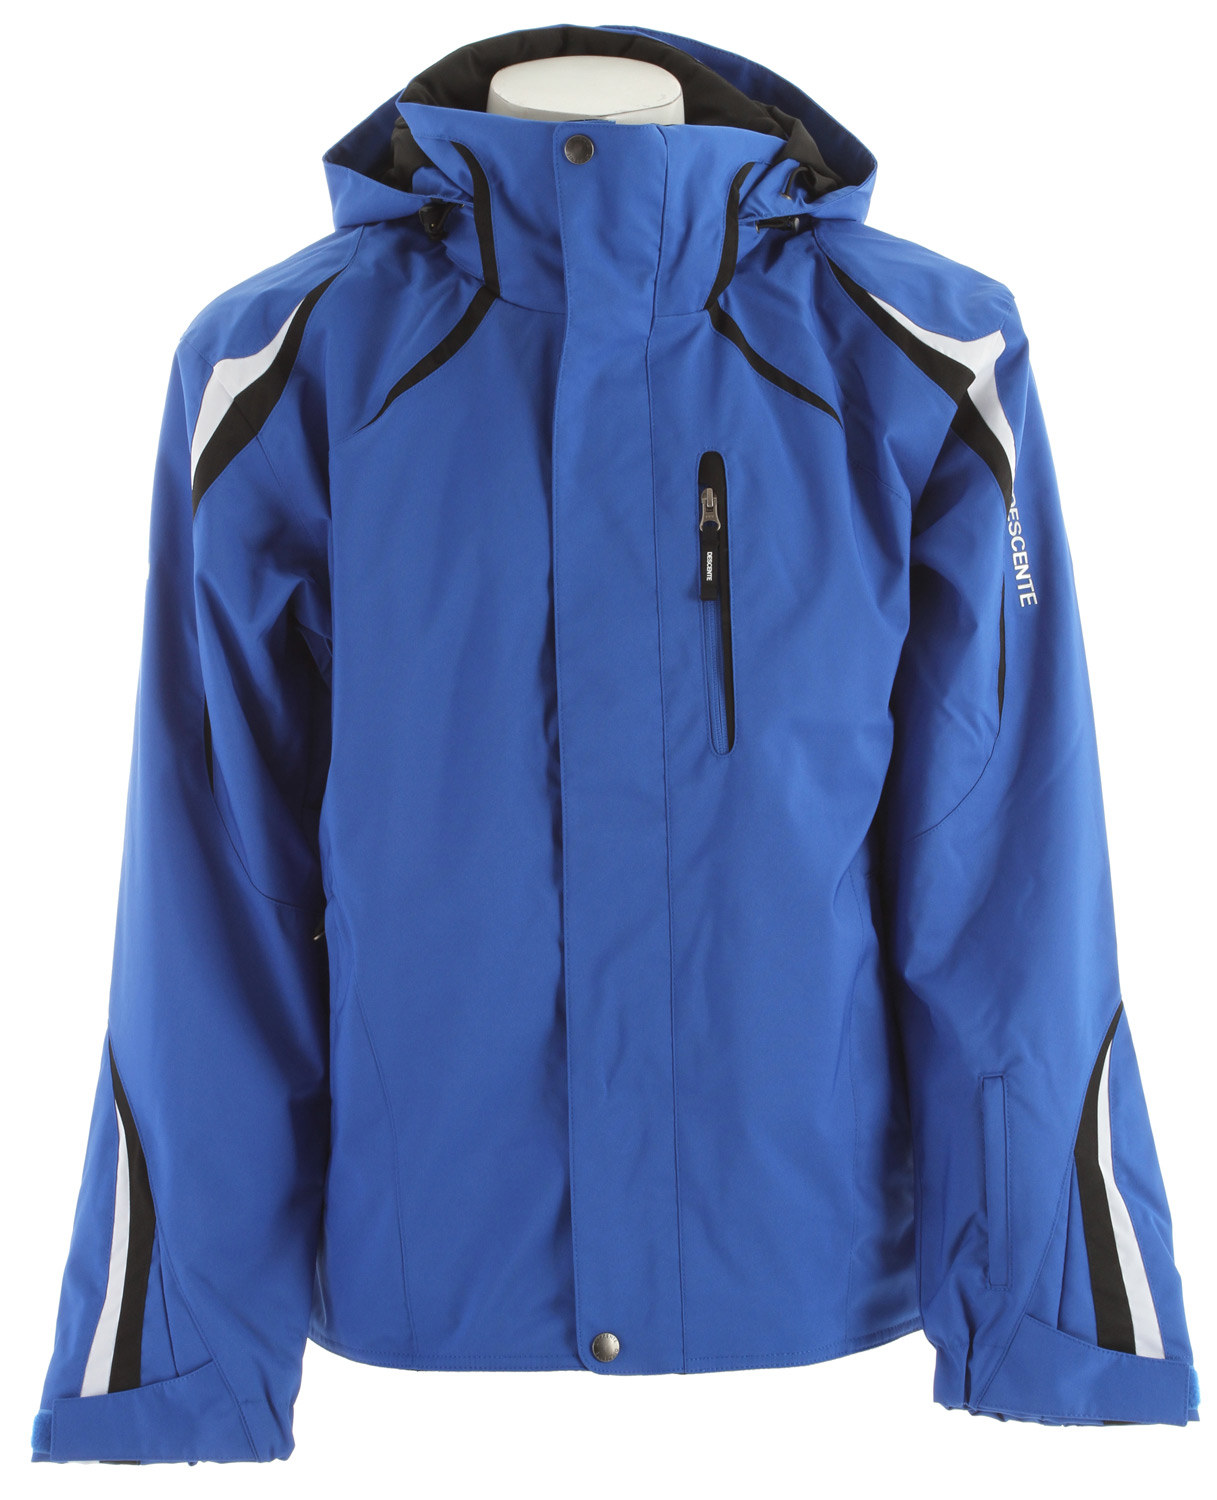 Ski Key Features of the Descente Course Ski Jacket: Oxkin Outer fabric Heatflex 40 - $201.95